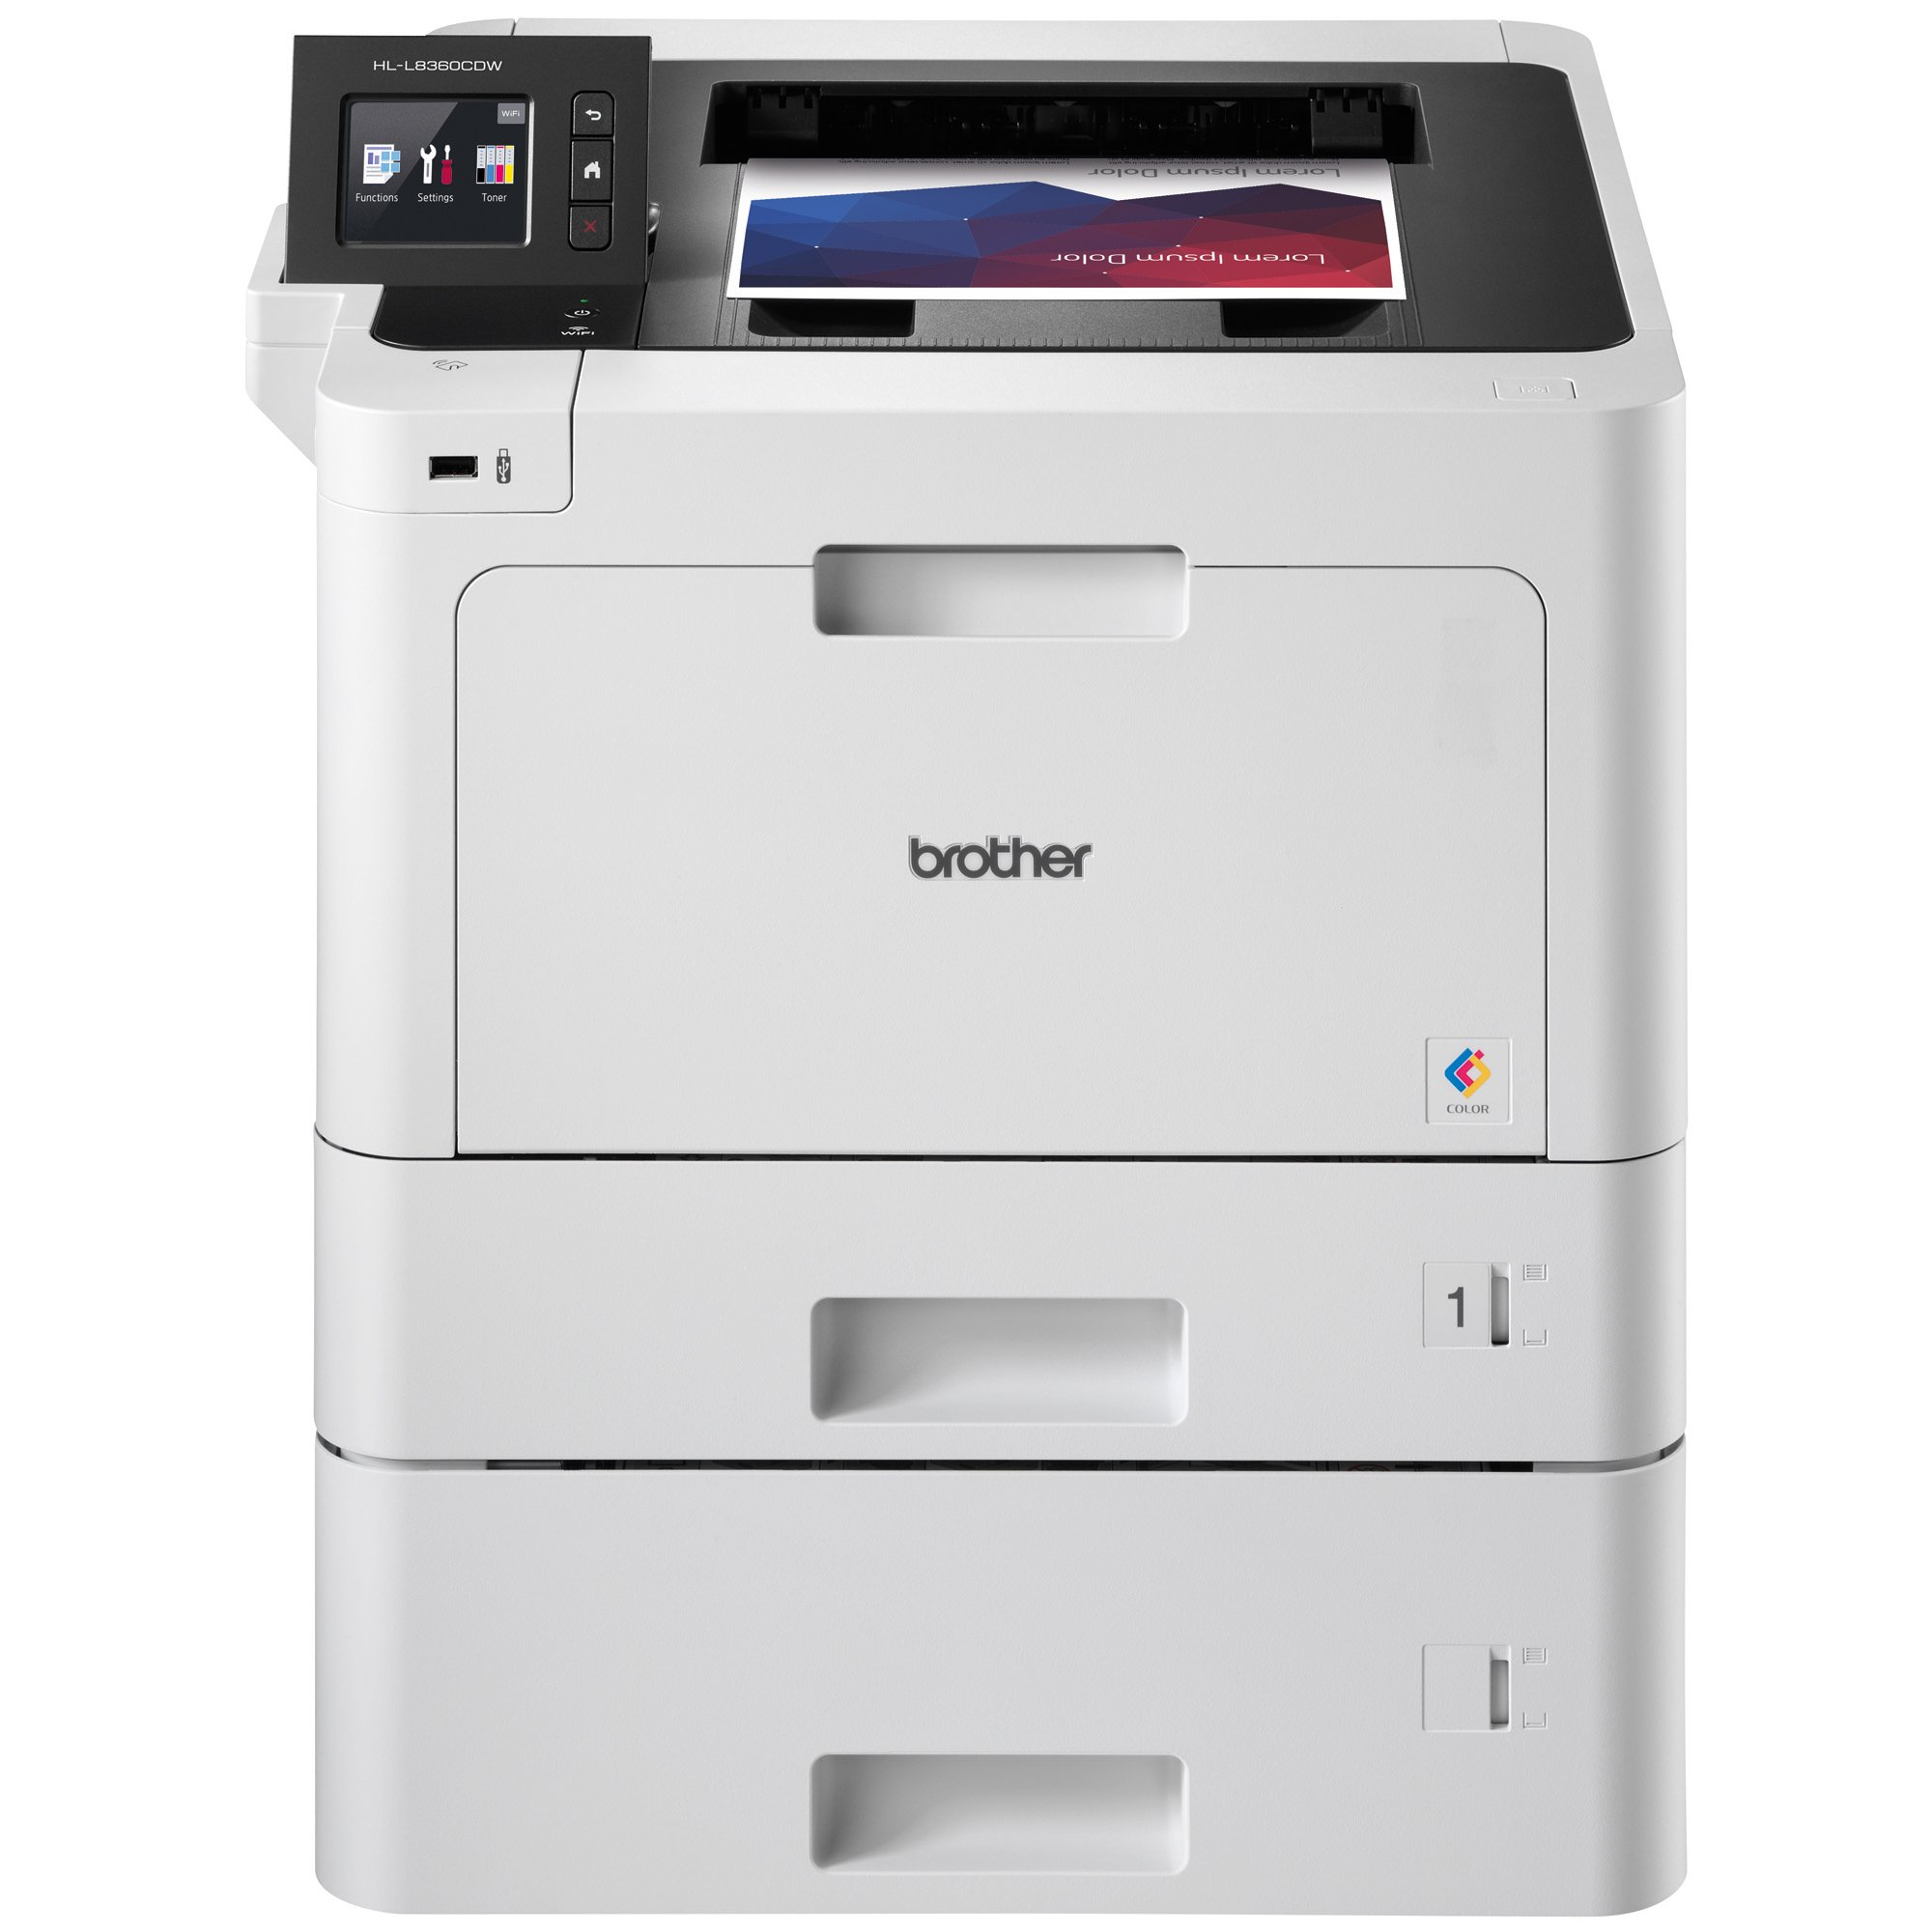 Brother Printer HLL8360CDWT Business Color Laser Printer with Duplex Printing, Wireless Networking and Dual Trays,  Amazon Dash Replenishment Enabled